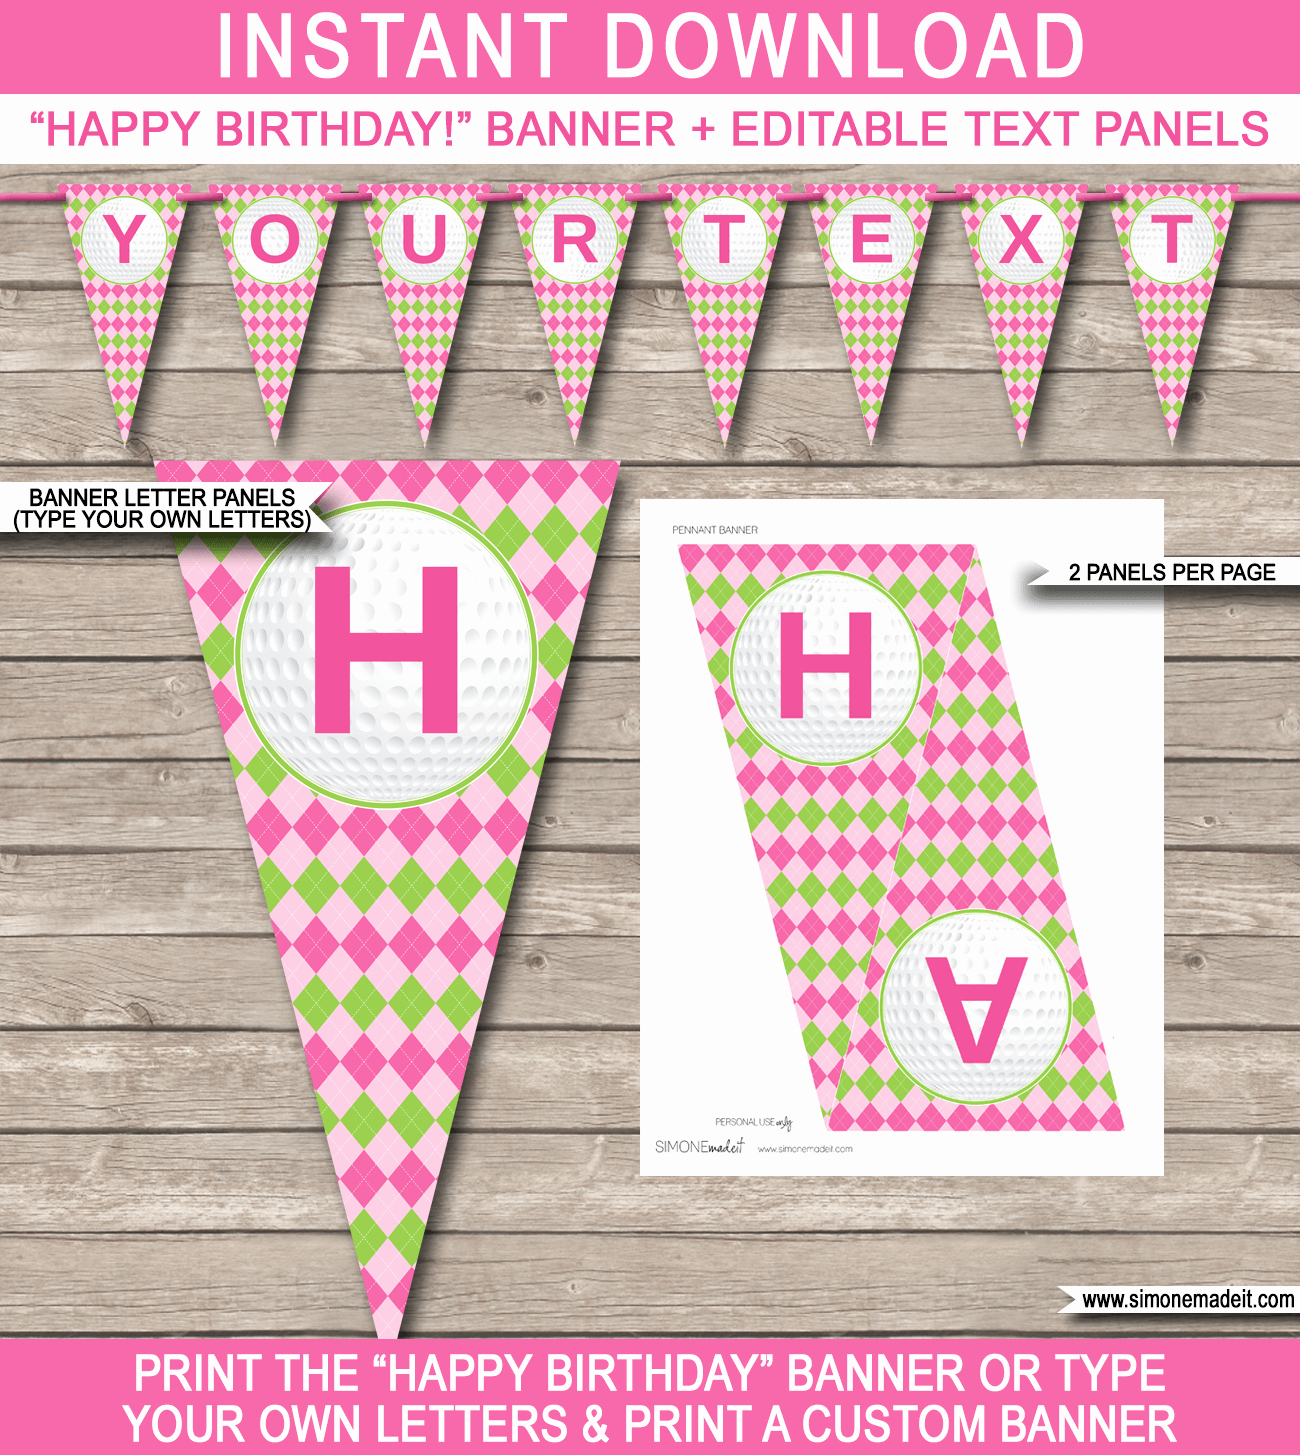 Happy Birthday Email Template Inspirational Girls Golf Birthday Banner Template